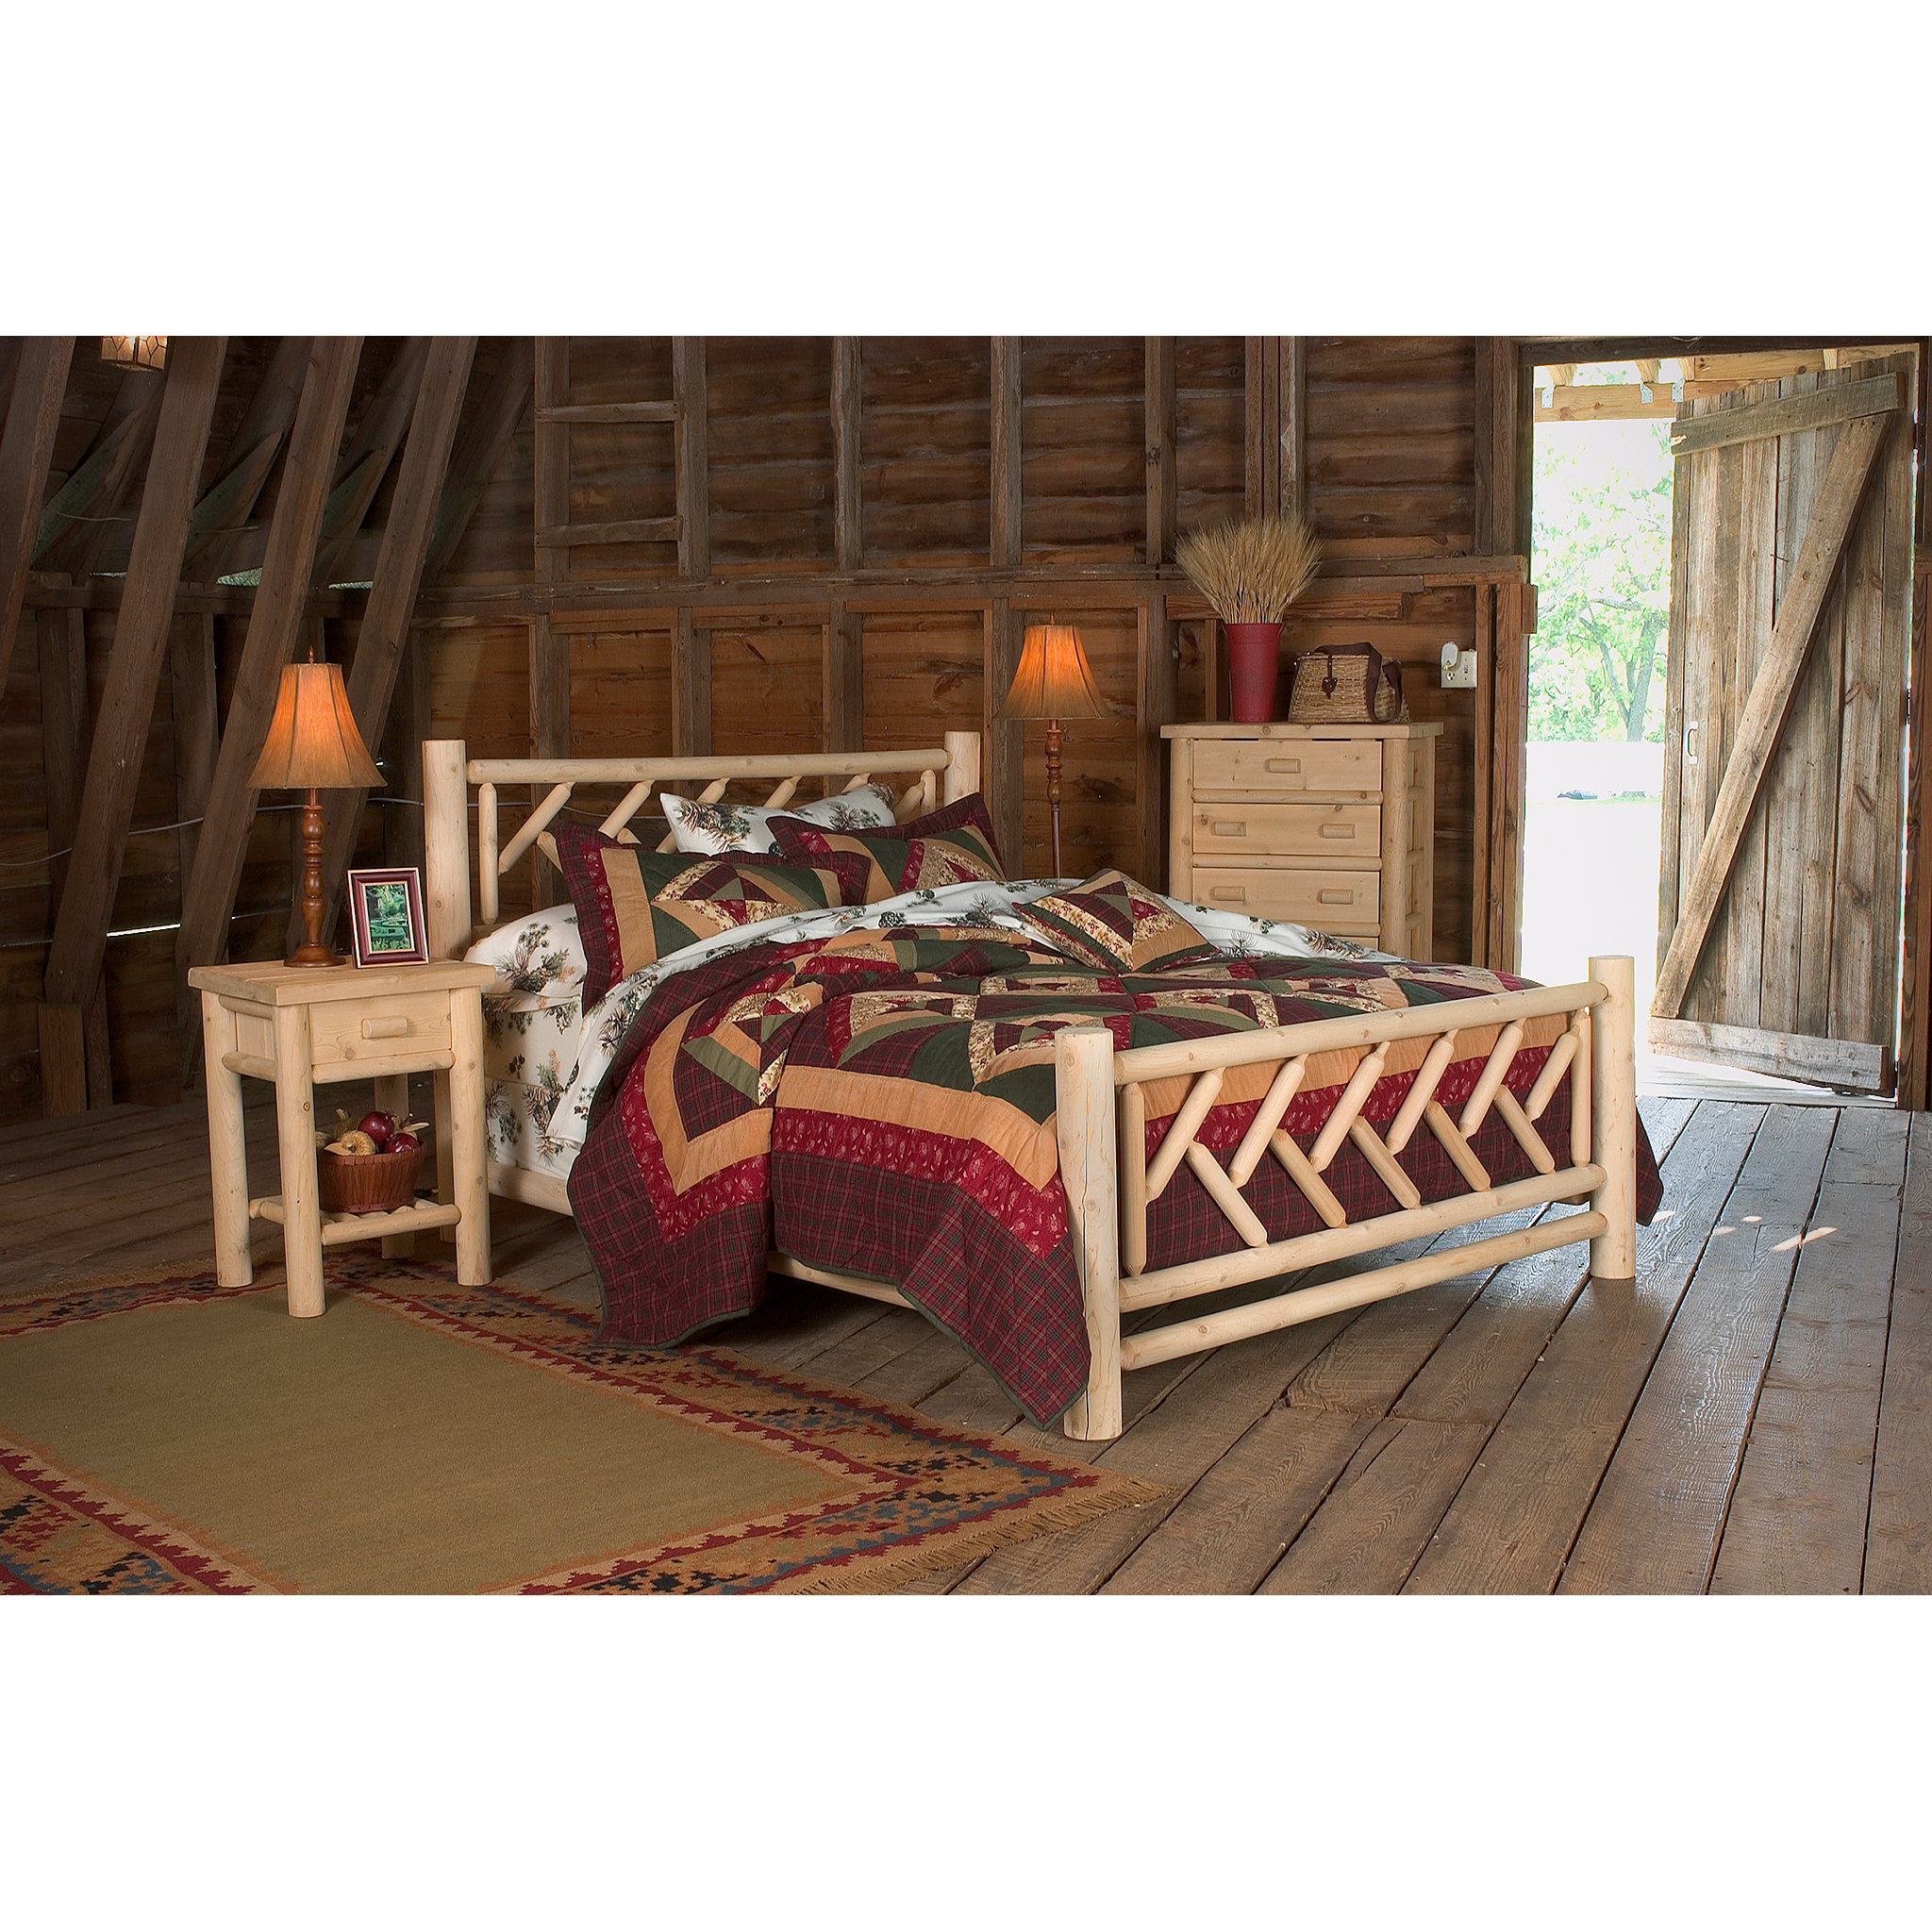 Product photograph of wooden bedframe and bedroom furniture in a barn shot for catalog and e-commerce